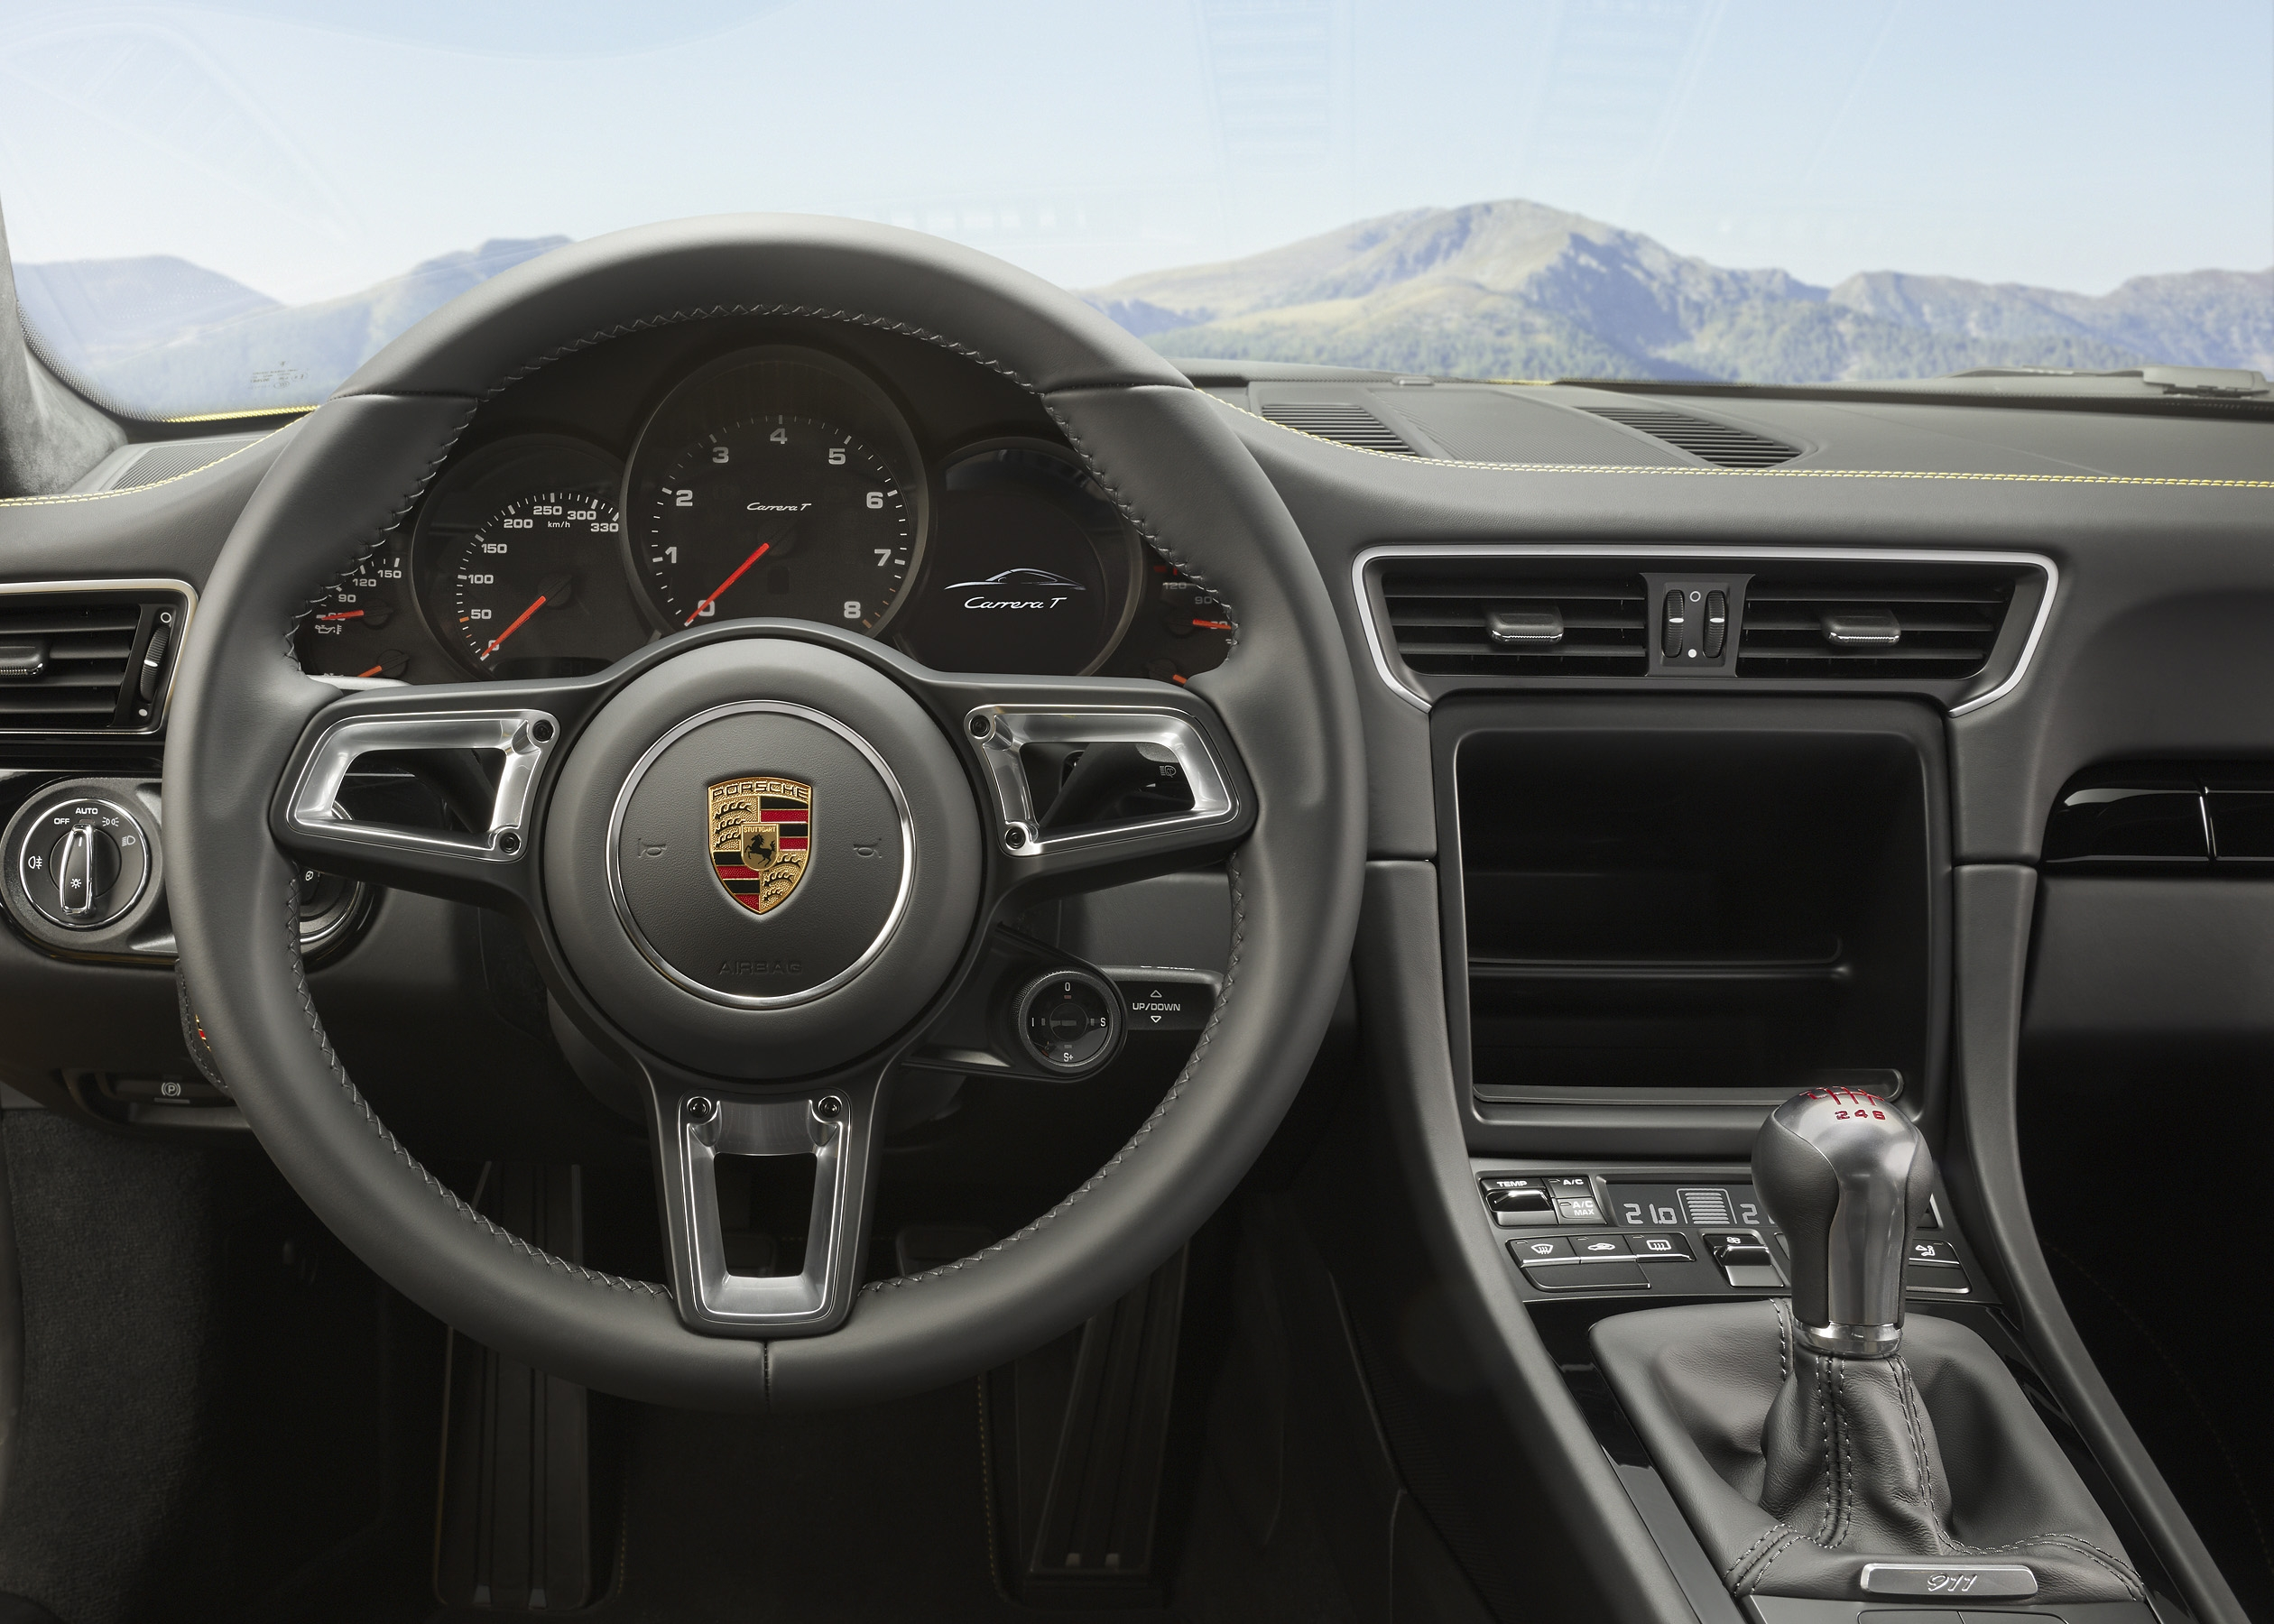 La Porsche 911 Carrera T optimise les performances sportives